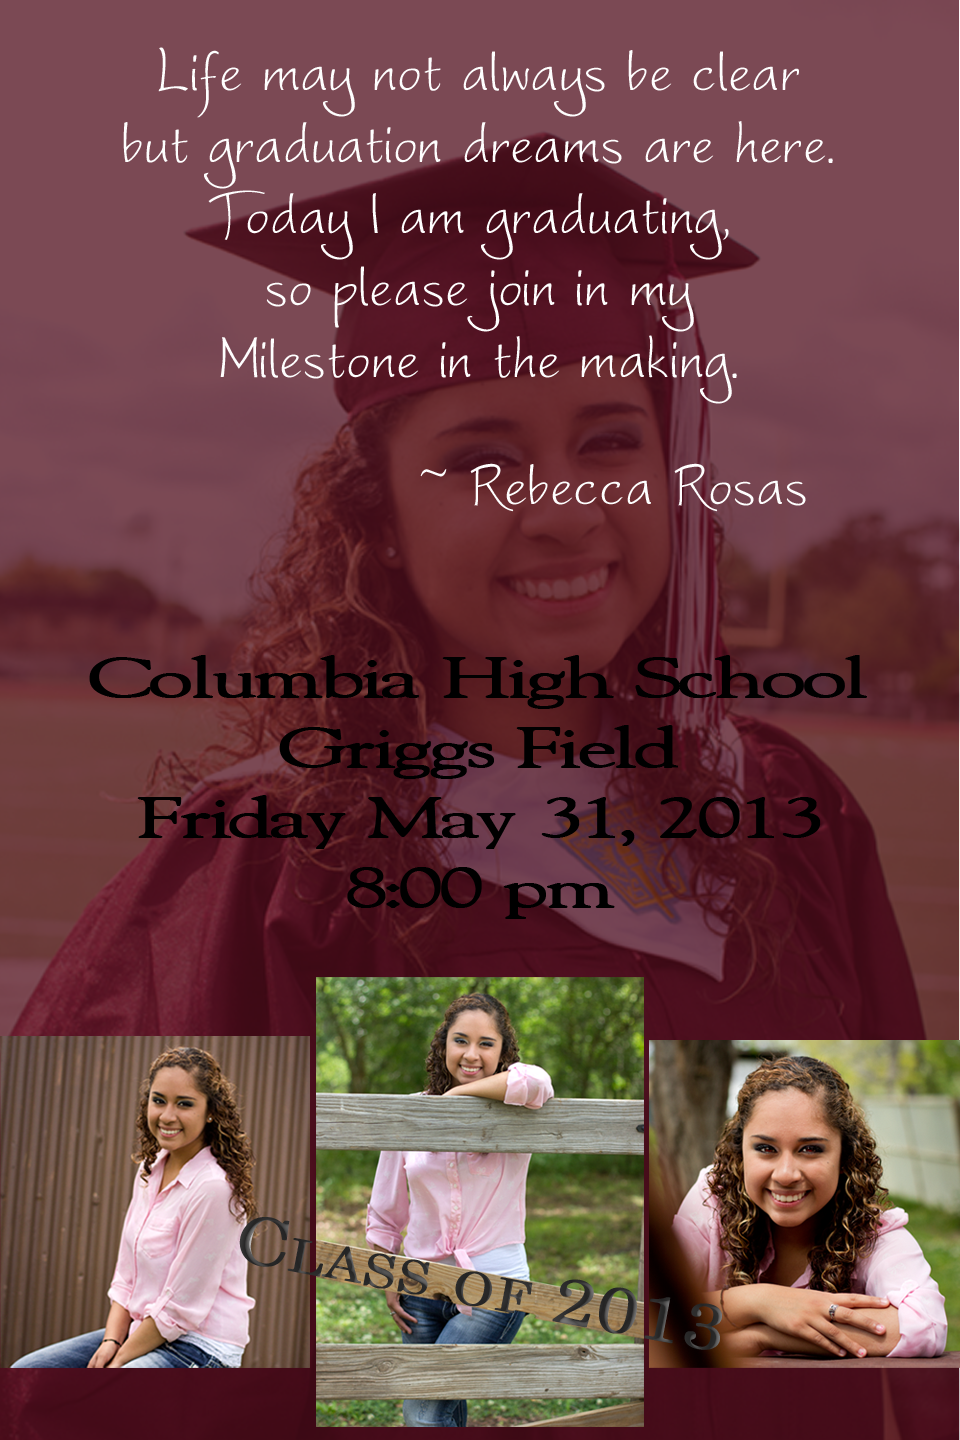 Graduation invitation Graduation Invitations Pinterest